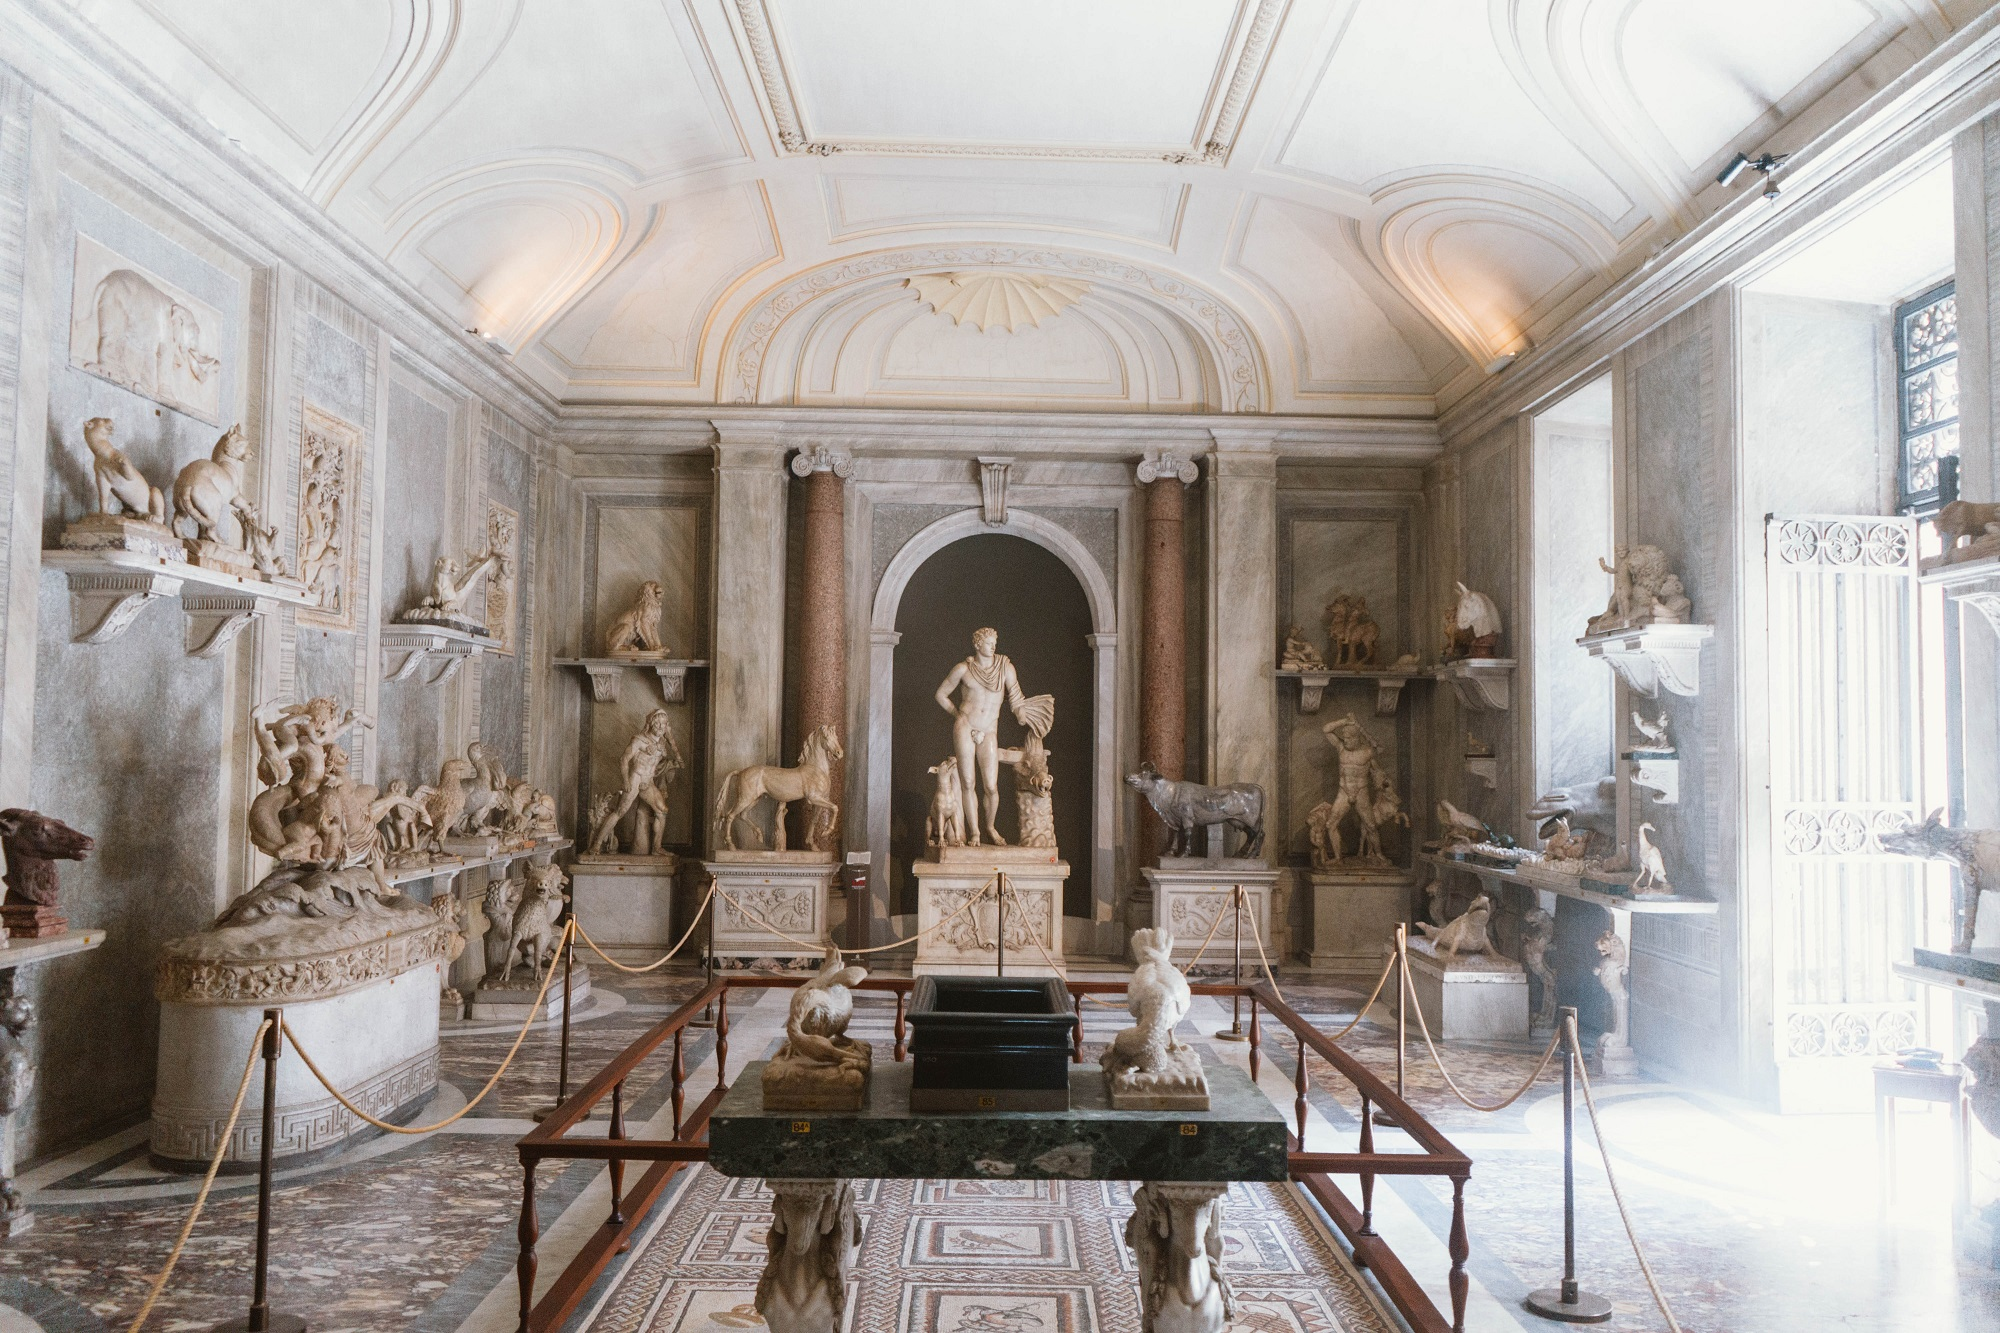 Why visit the Borghese Gallery?